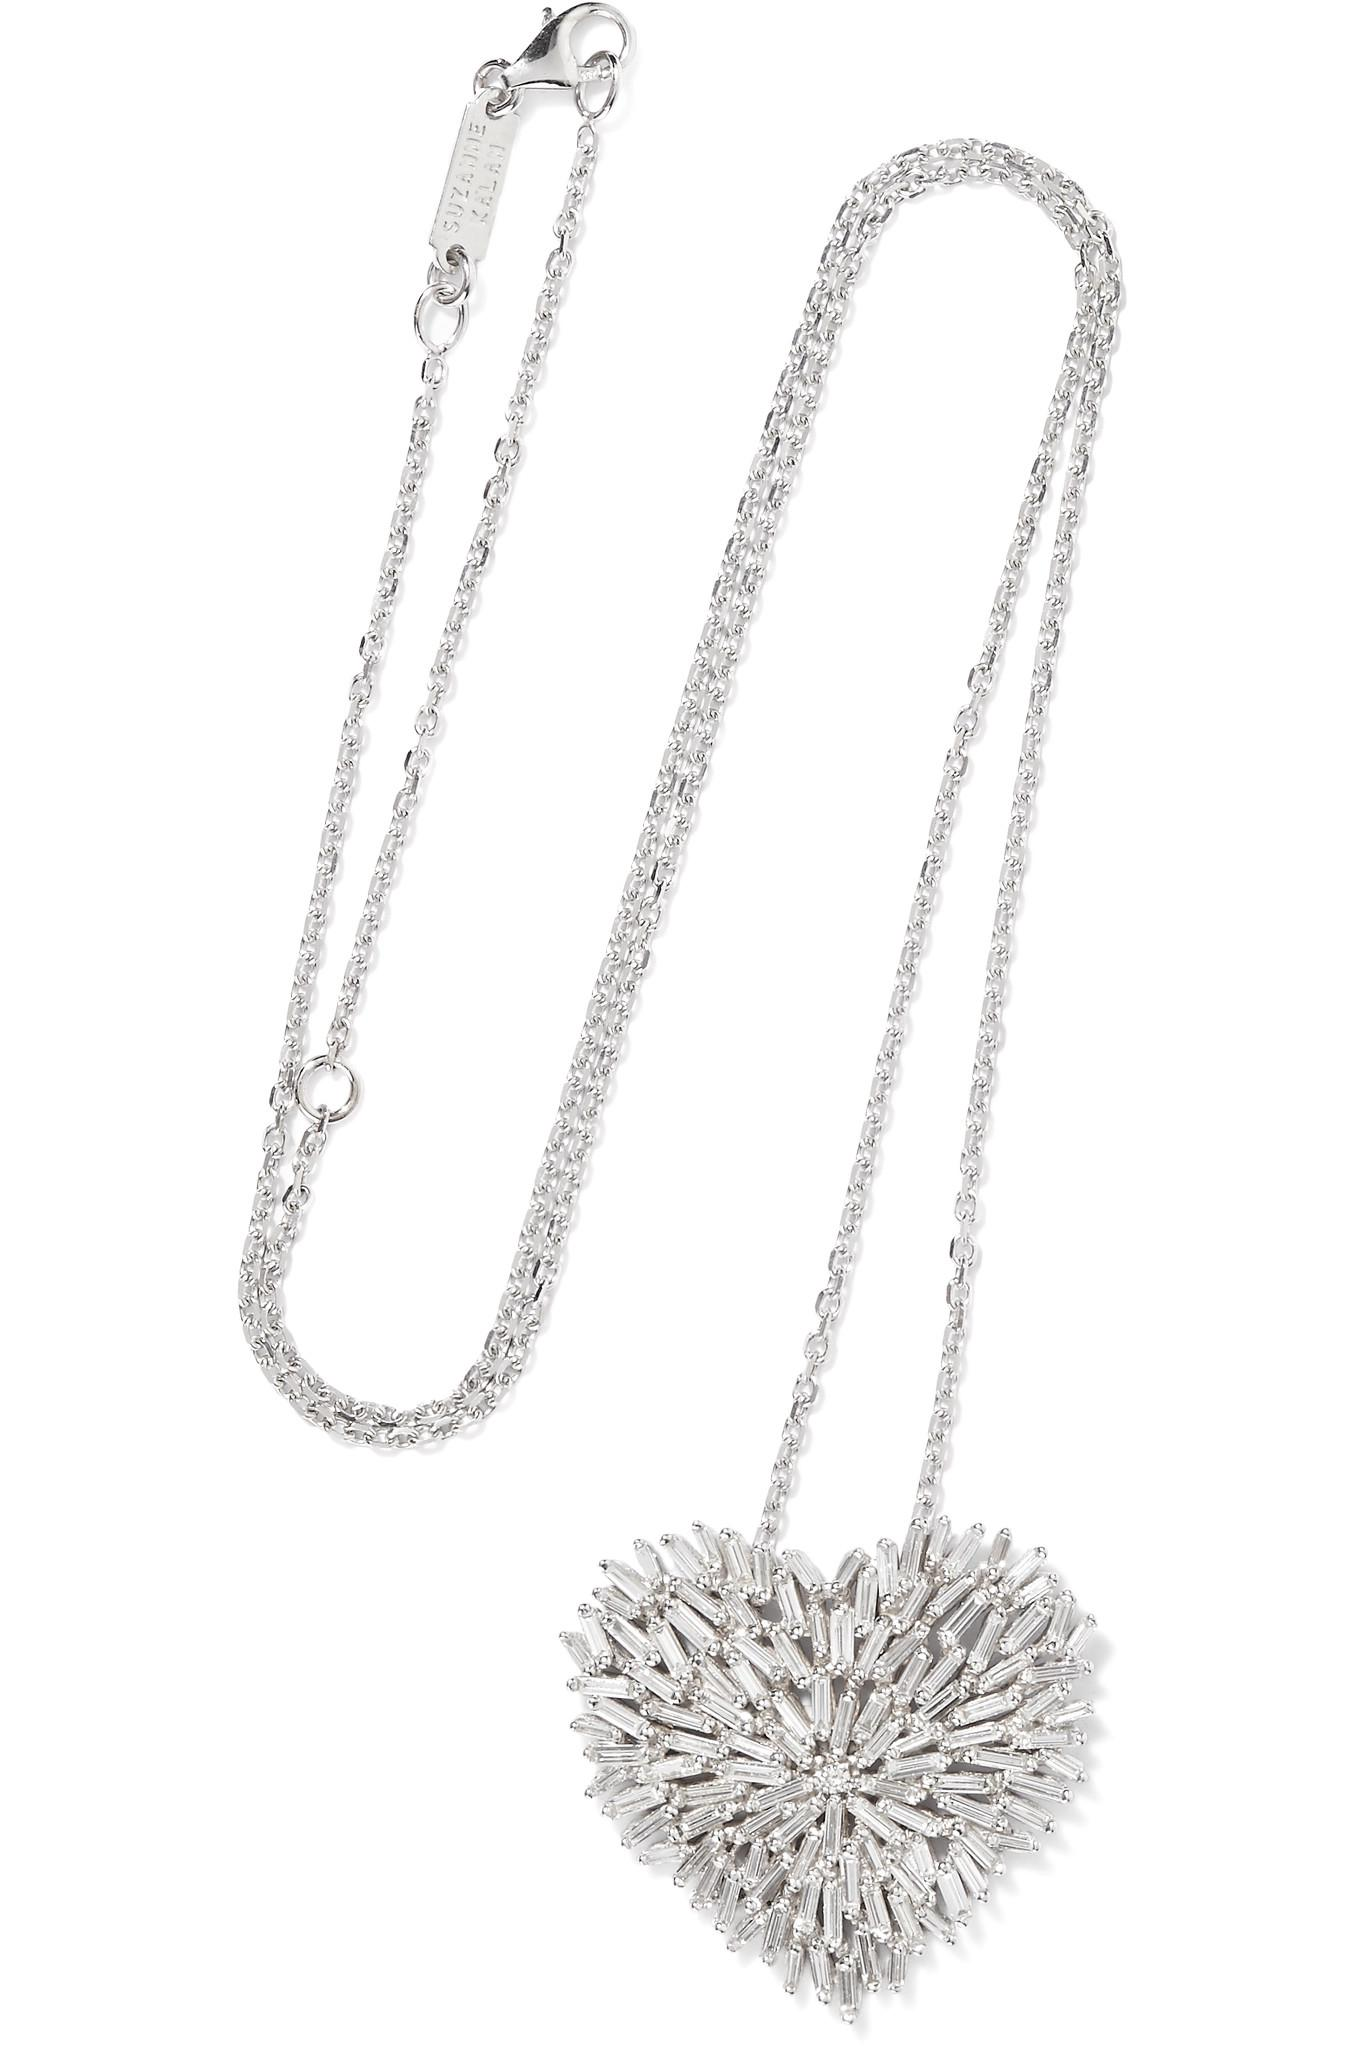 Suzanne Kalan 18-karat White And Rose Gold Diamond Necklace - White gold 32sB7